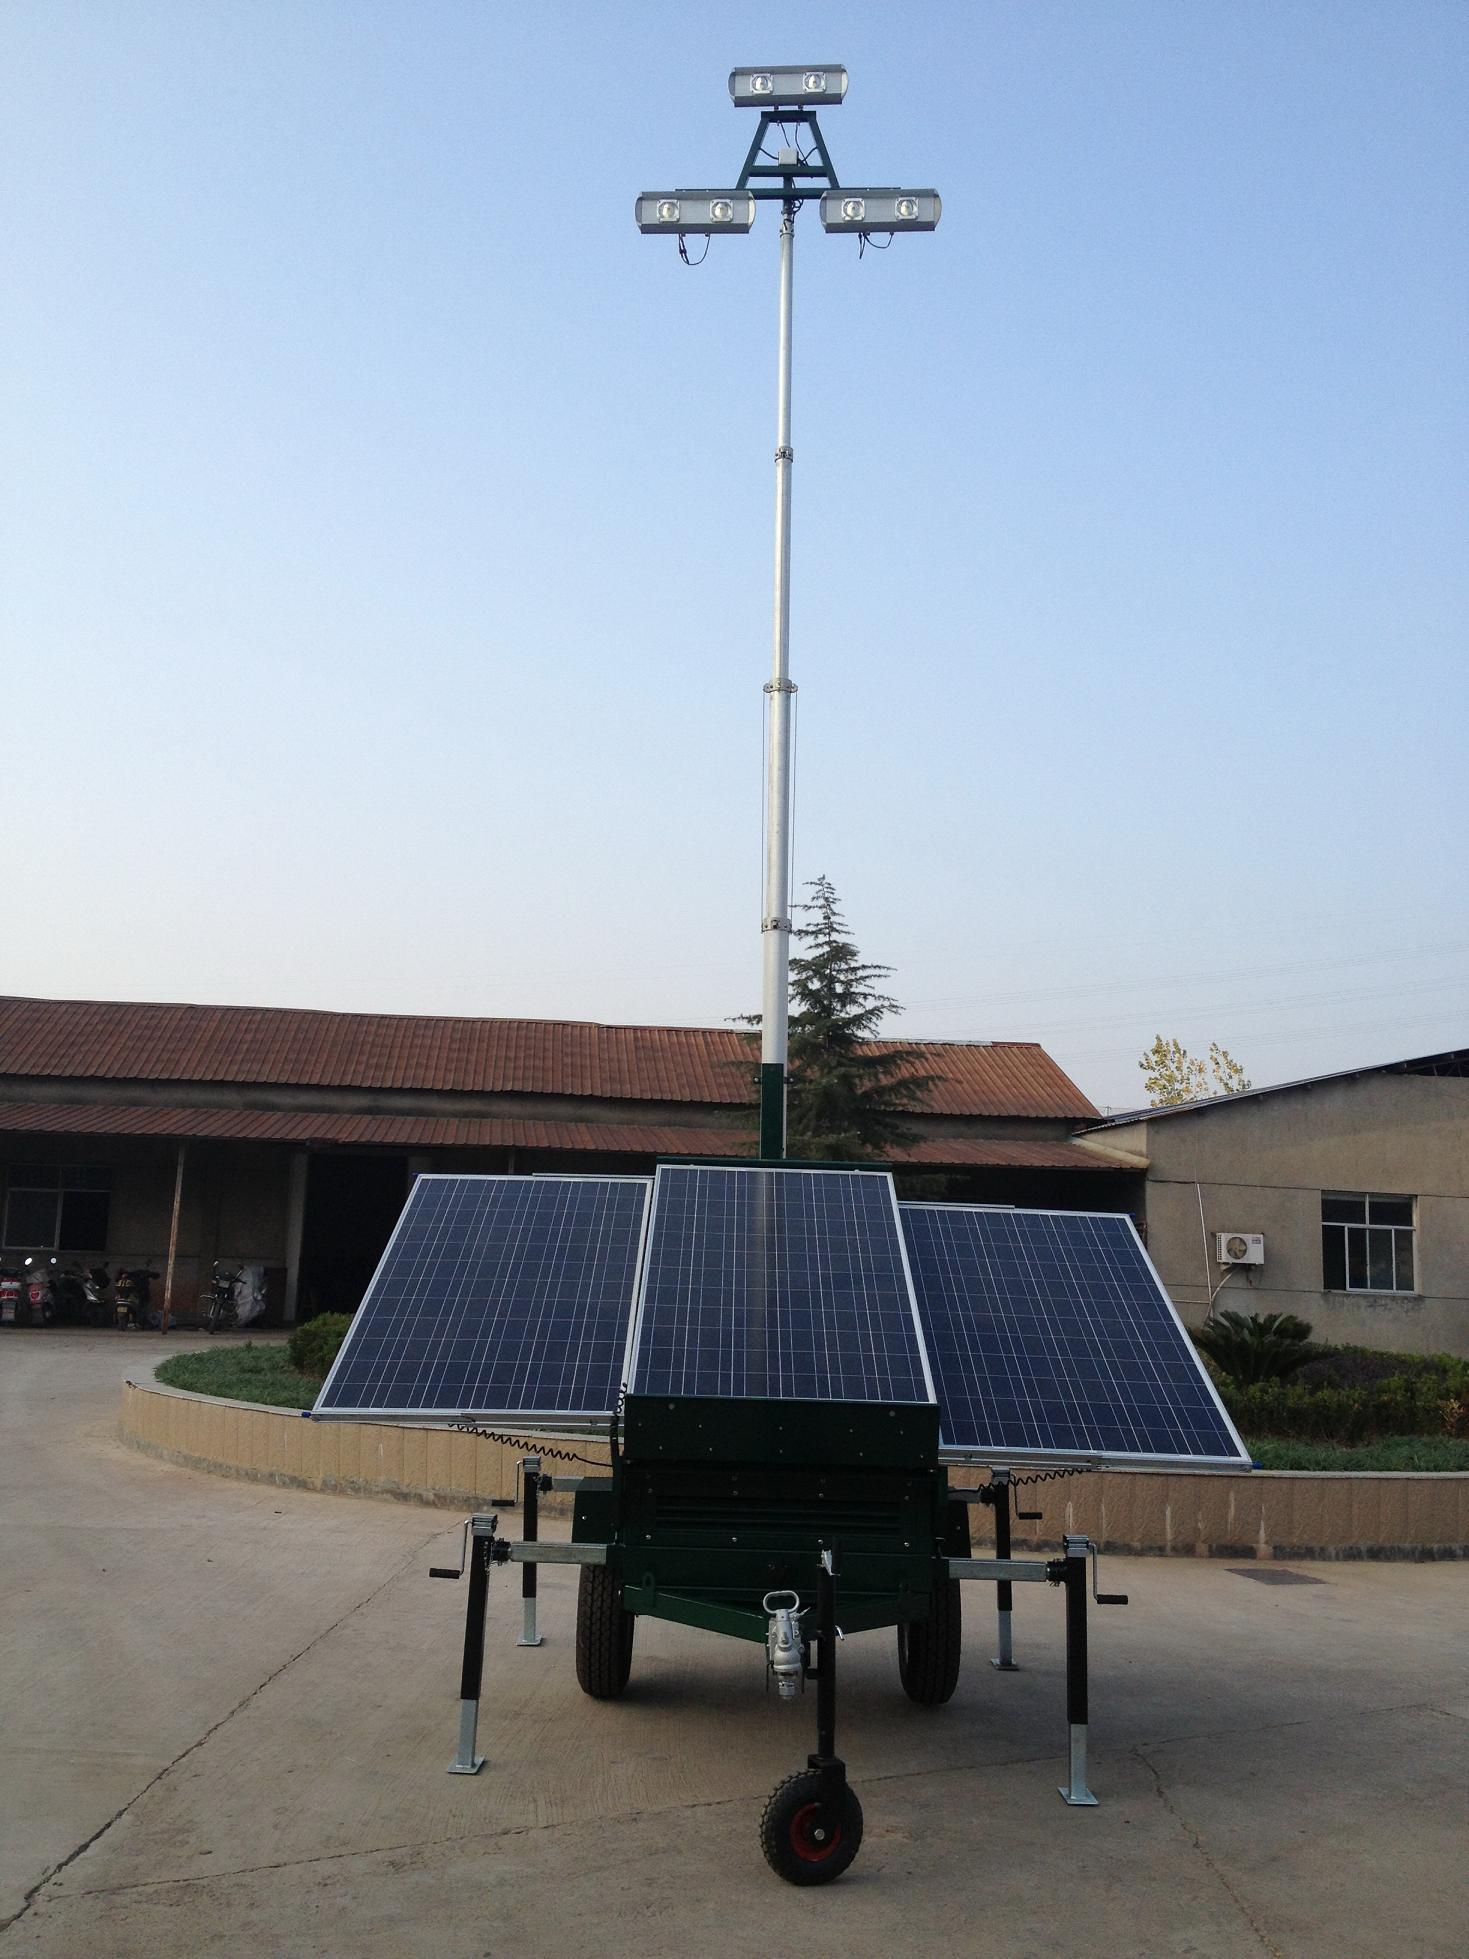 2018 Solar Wind Hybrid Power Lighting Tower ,Tower Solar Light,Solar Led  Light Tower,Industria Lighting Tower,Solar Led Light Tower From  Solarjack08, ...